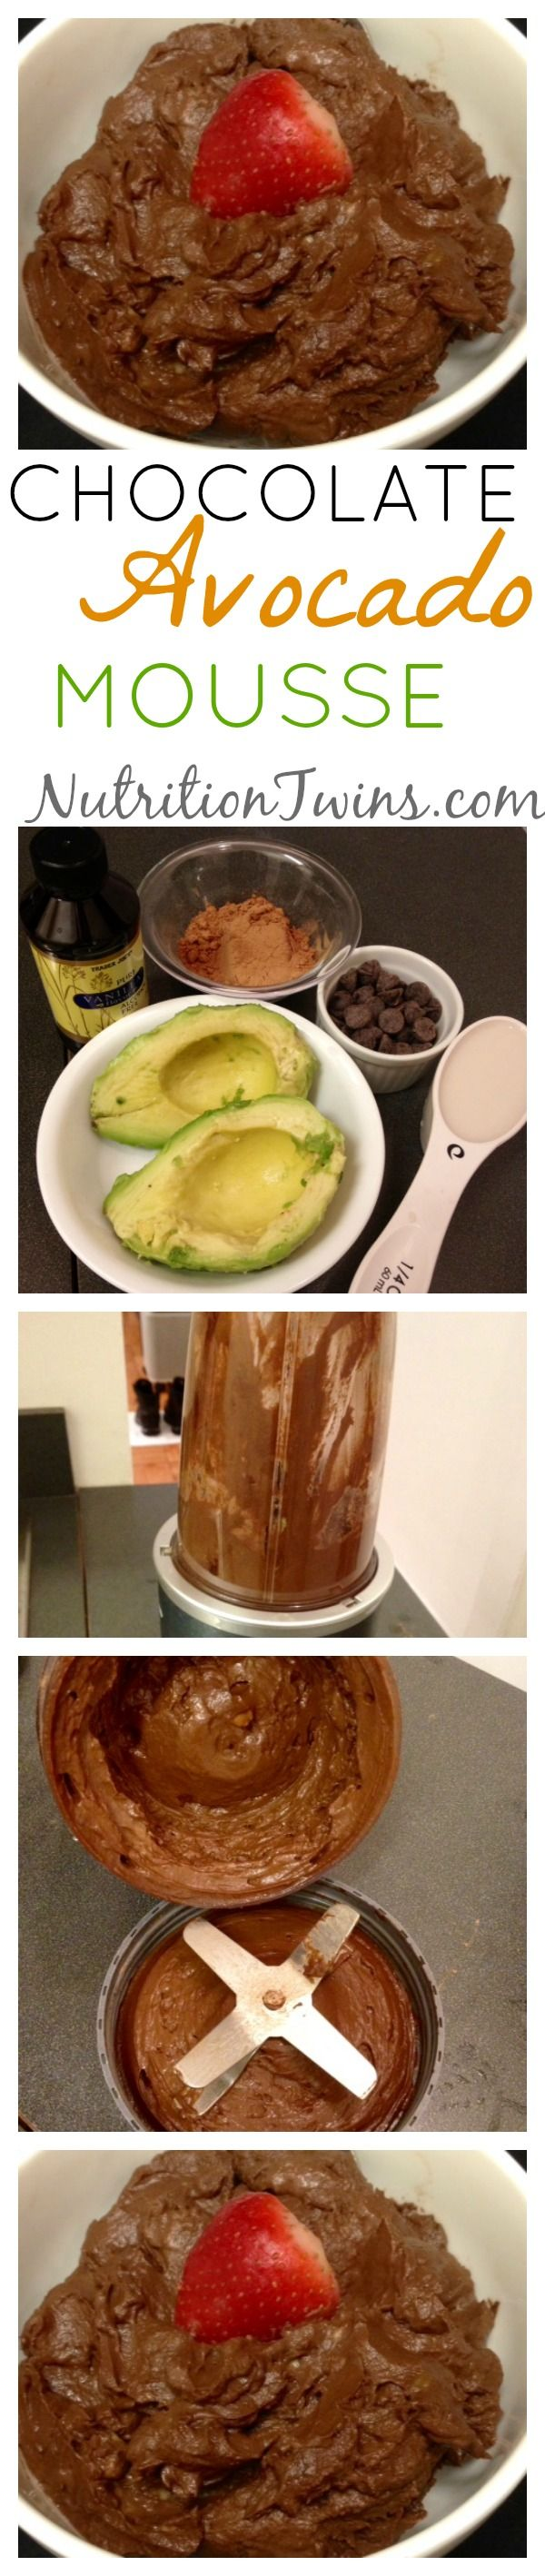 Chocolate Avocado Mousse | Good for the Waistline | Creamy and Only 87 Calories | Satisfying, Healthy, Vegan, Gluten-free, Dairy Free | For MORE RECIPES, fitness & nutrition tips please SIGN UP for our FREE NEWSLETTER www.NutritionTwins.com